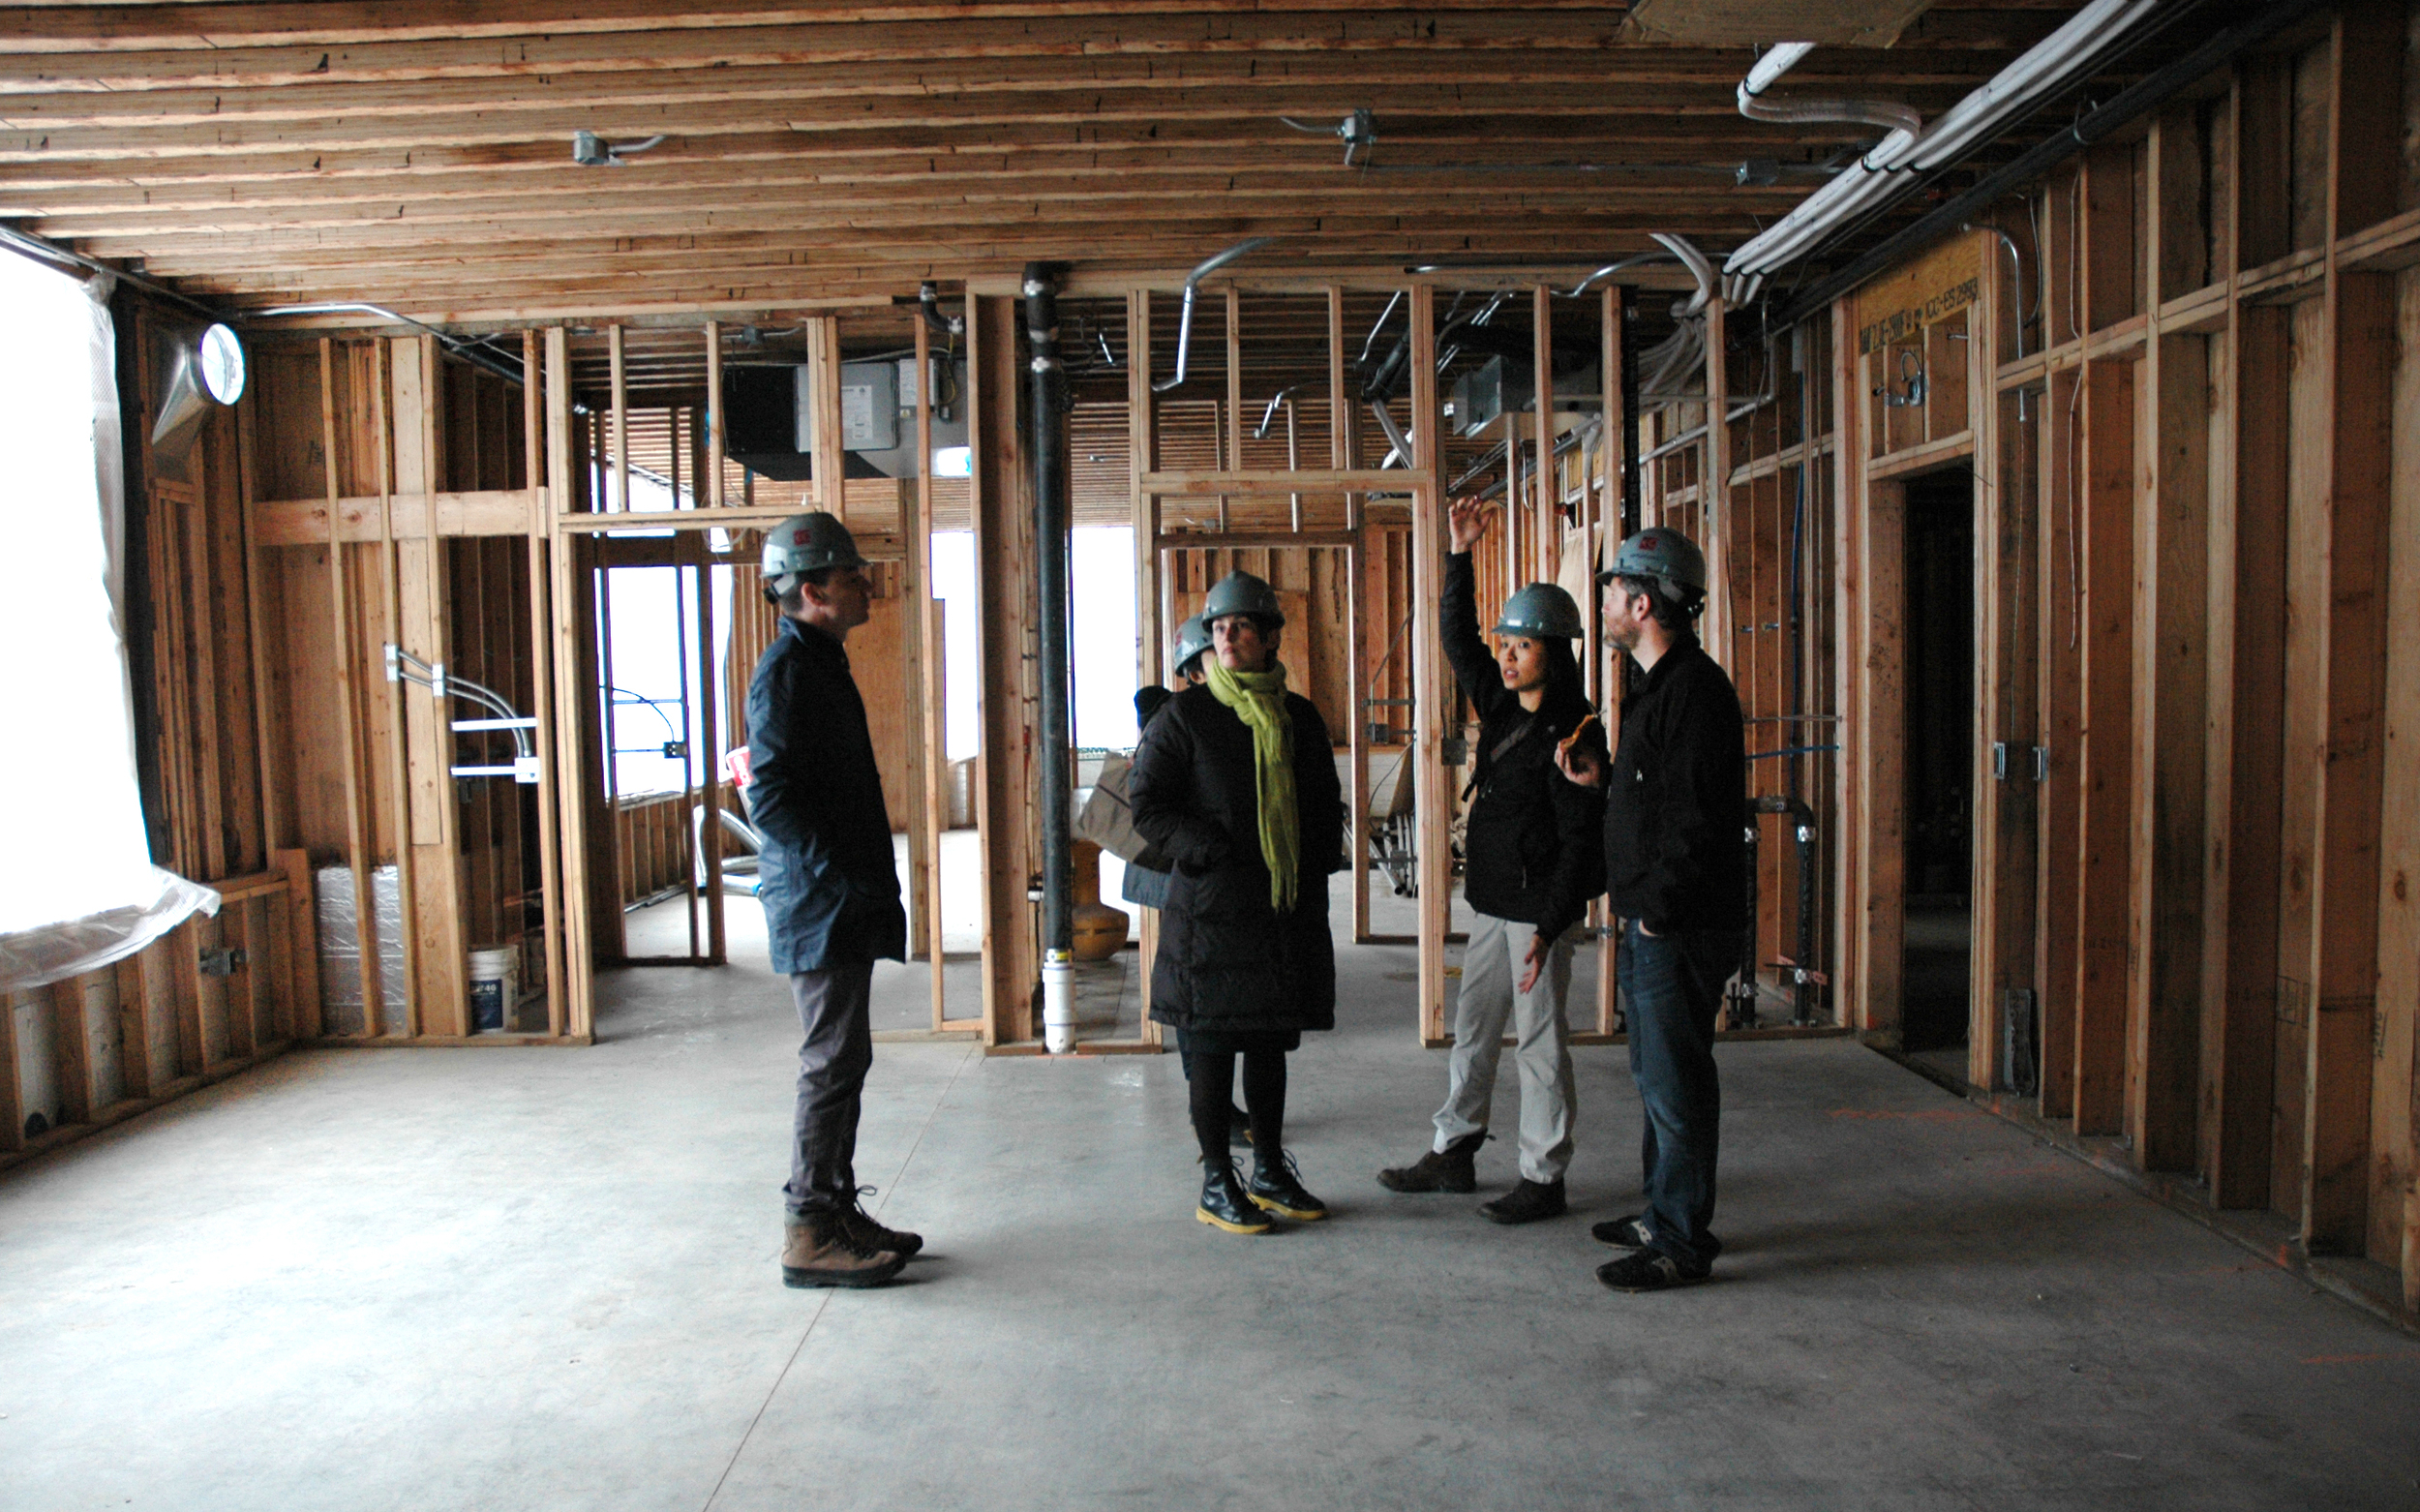 Gladys explains the layout of the pre-k classrooms. We started with the idea of interconnected classrooms- visually and physically students and teachers could pass through adjacent classrooms, with safety and privacy taken into account.Small pockets were created between these classrooms for either storage, study, meeting and other amenities. We were very pleased with the ample light all classrooms received, even in the lower floors.